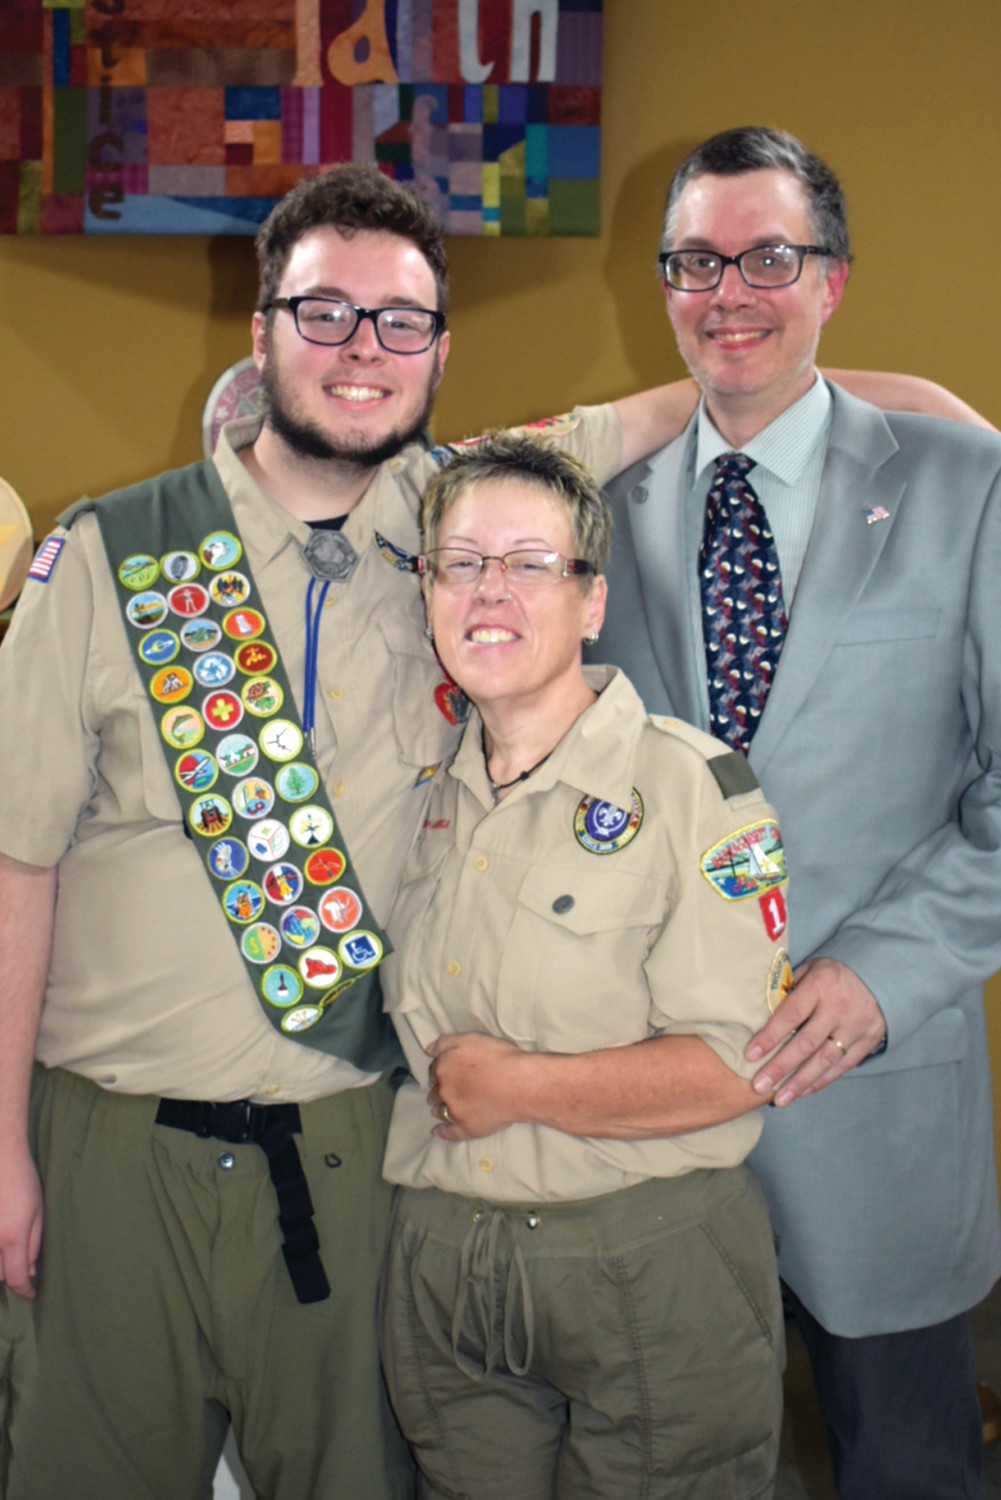 EAGLE AND HIS FAMILY: Eagle Scout Russell David Gundlach and his parents, Russell Jr. and Karen, at Sunday's ceremony.